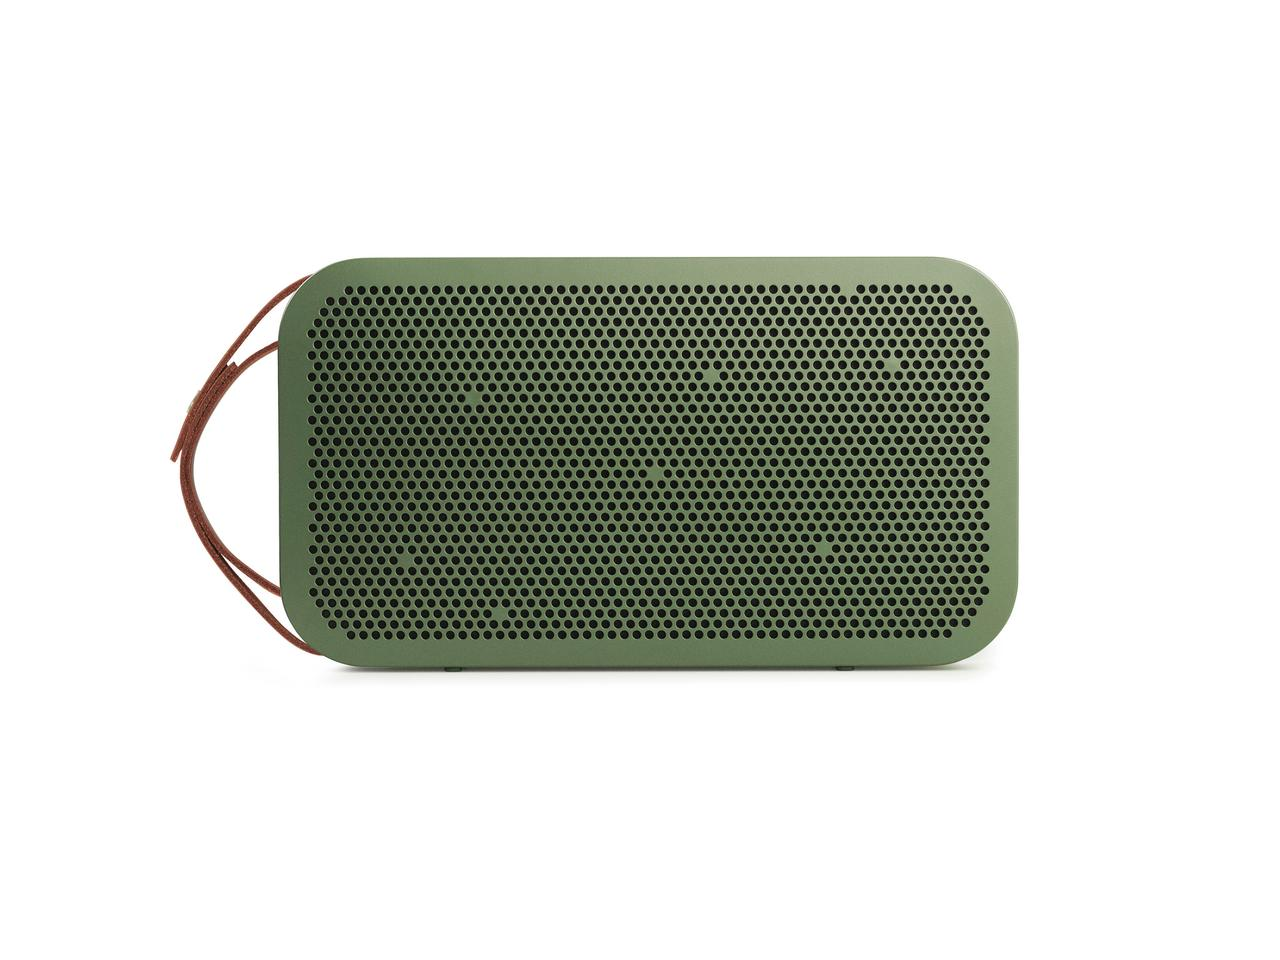 The BeoPlay A2, shown in green